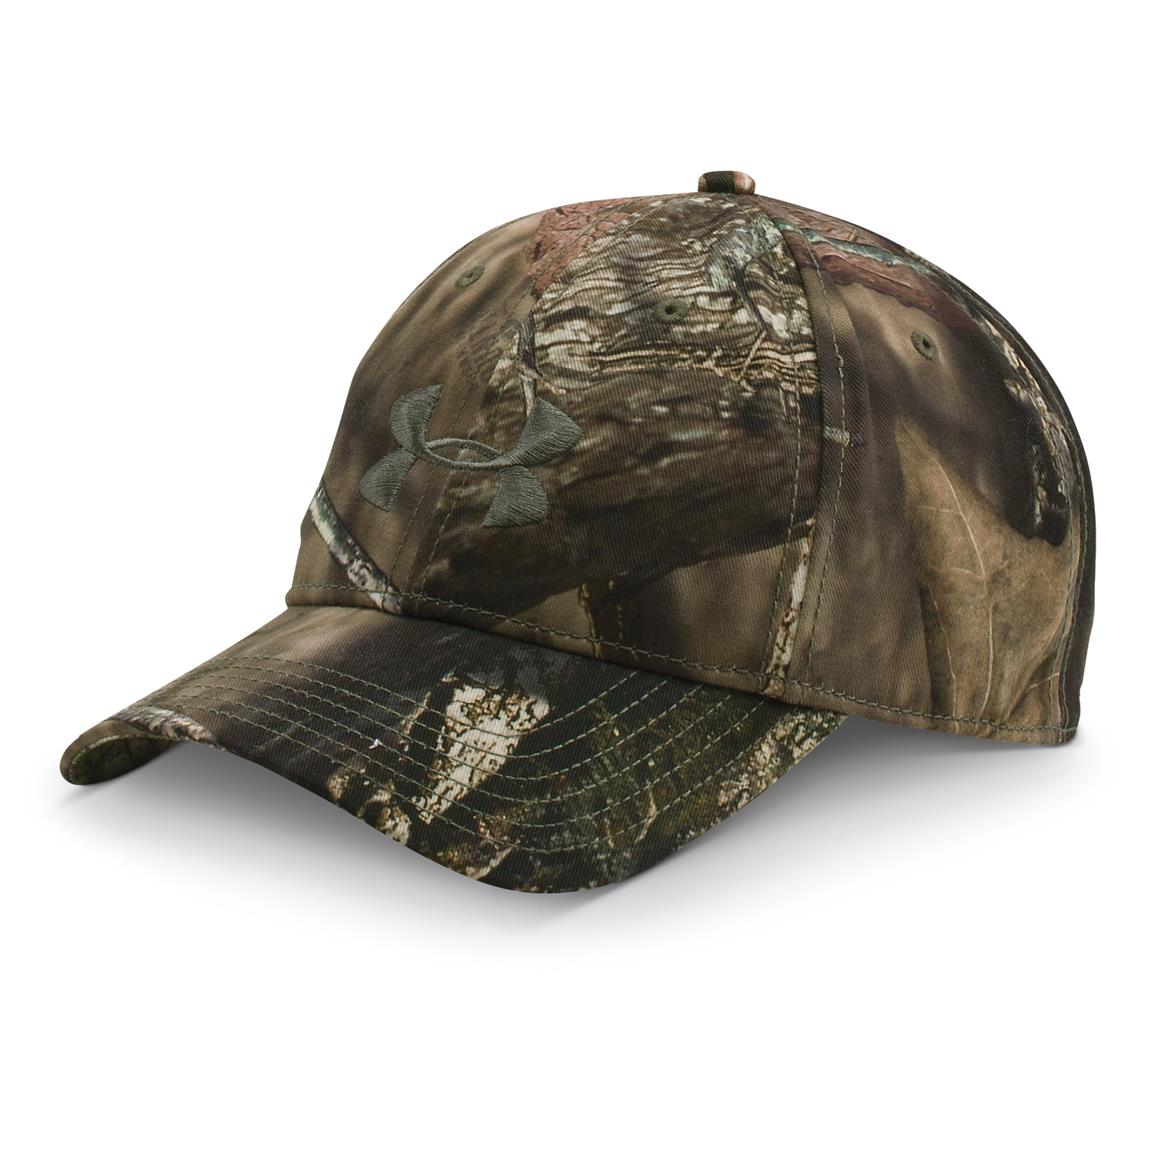 Under Armour Men's Camo Baseball Cap, MOBU Country - Mossy Taupe